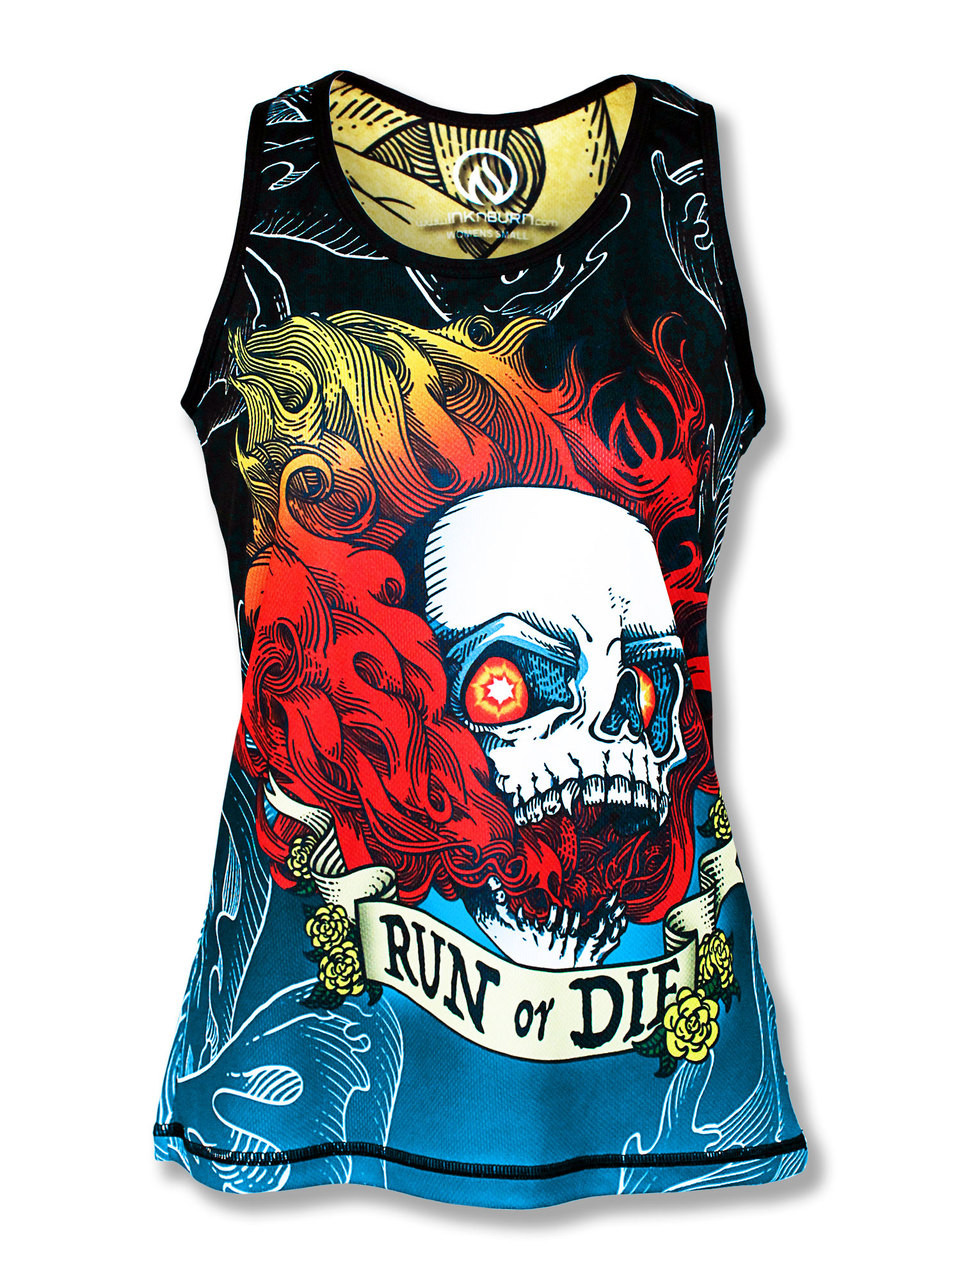 bc89227cc3 Women's Run or Die Fire Skull Singlet or Tank | Running & CrossFit